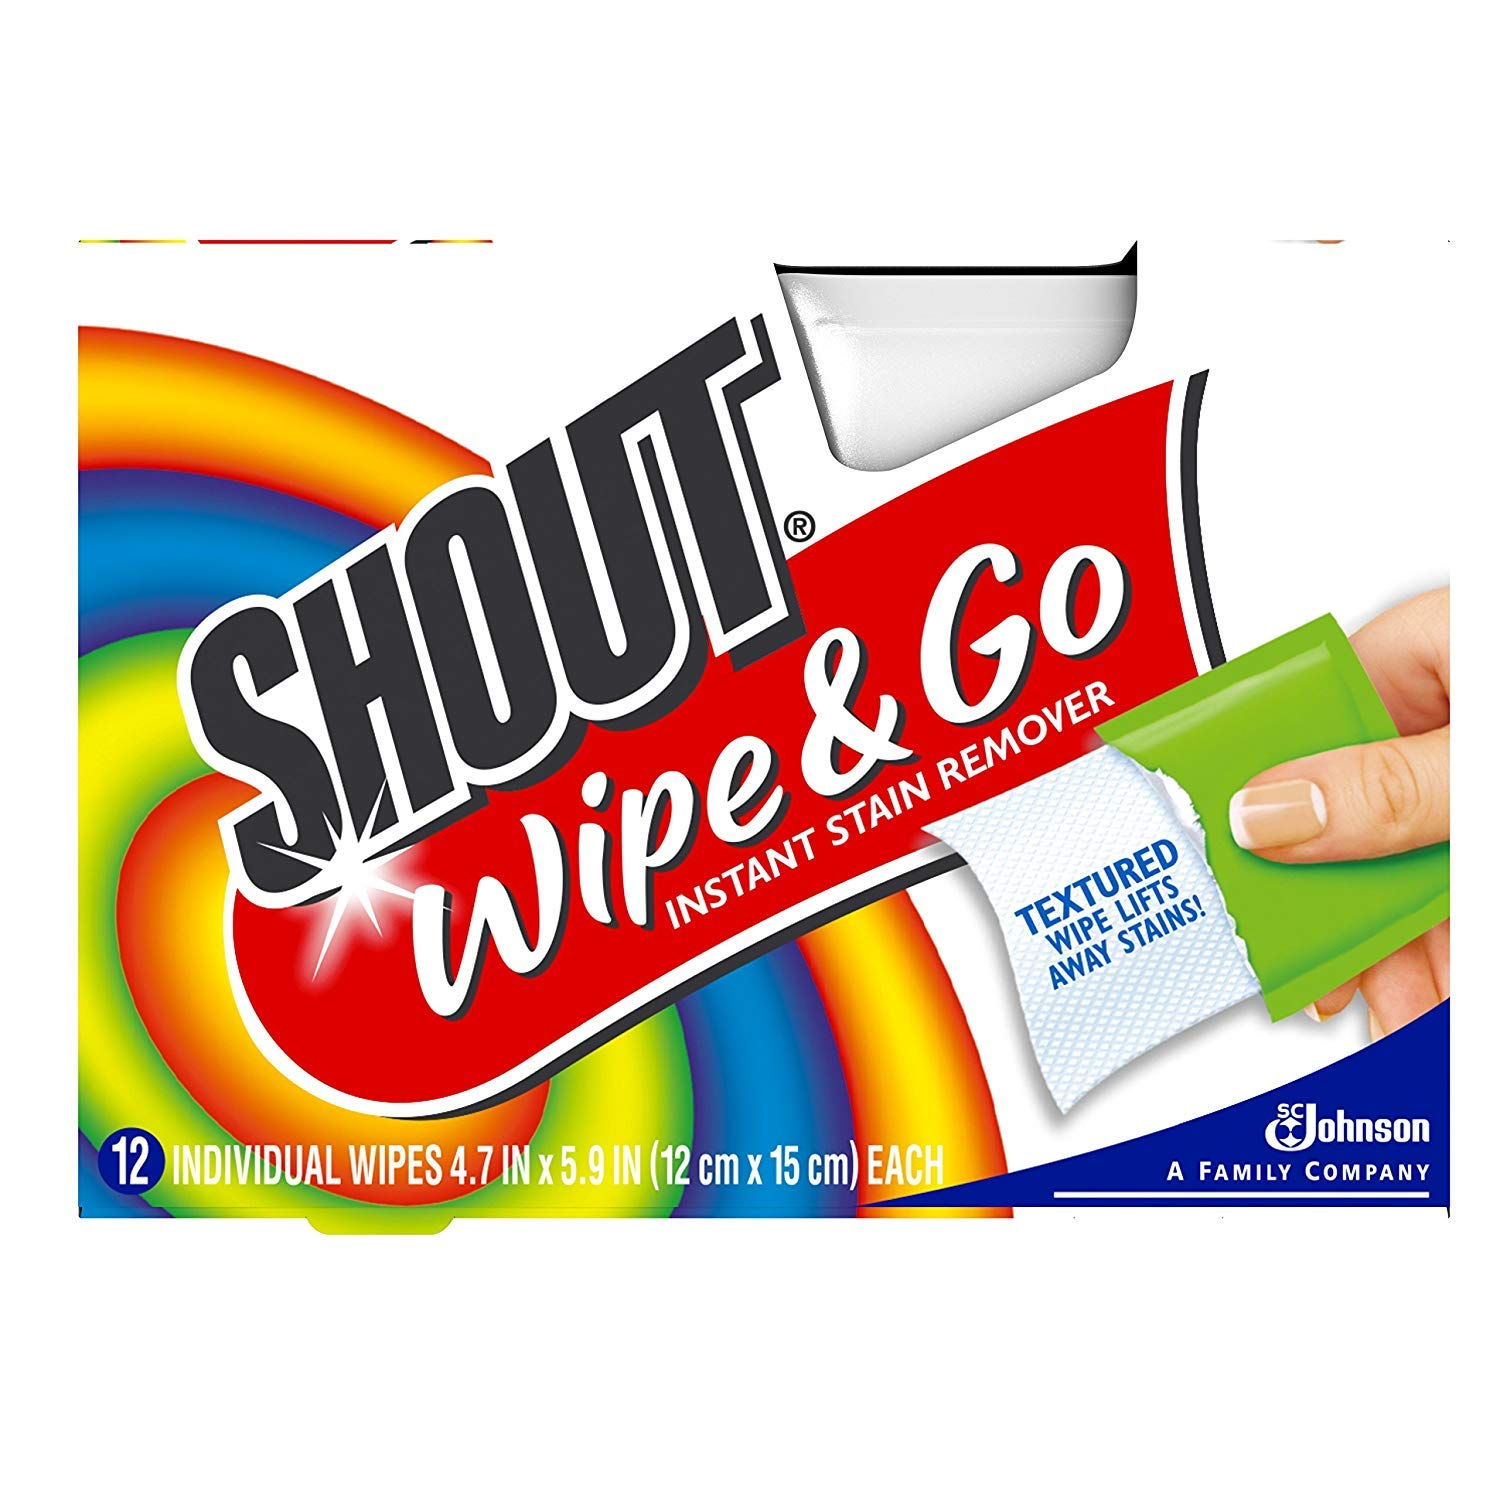 Amazon.com : Shout Wipe & Go Instant Stain Remover - 12 CT : Grocery & Gourmet Food